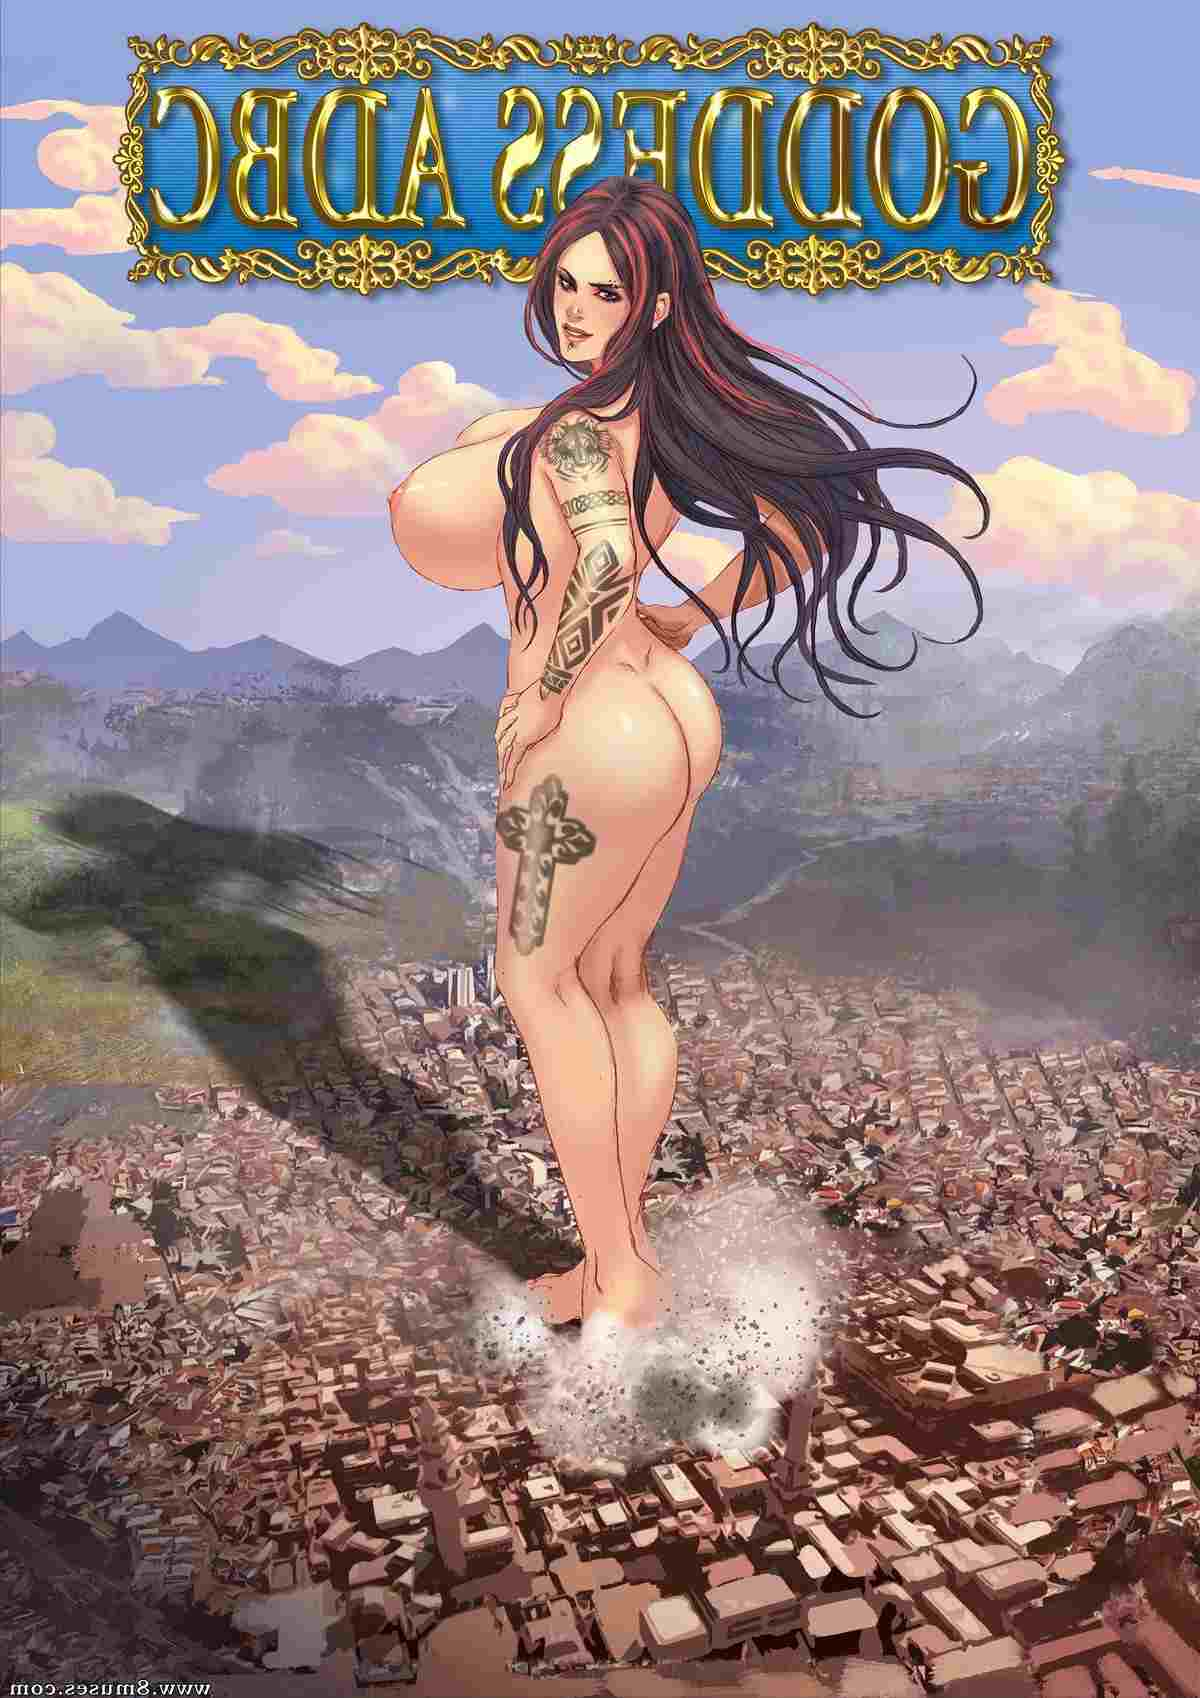 Giantess-Fan-Comics/Goddess-ADBC Goddess_ADBC__8muses_-_Sex_and_Porn_Comics_3.jpg